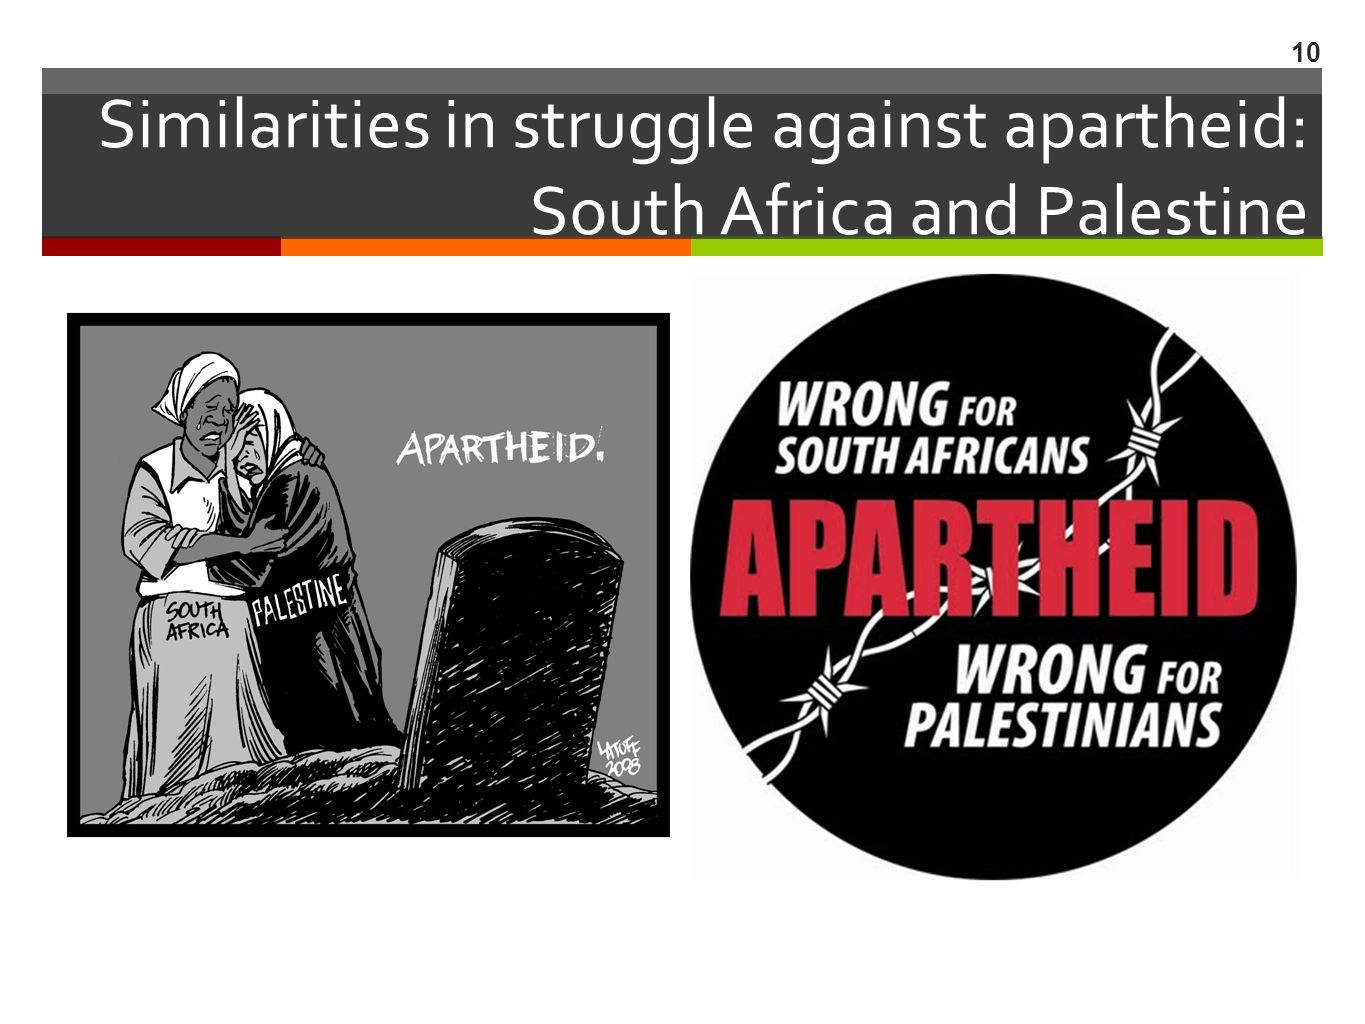 Similarities in struggle against apartheid: South Africa and Palestine 10